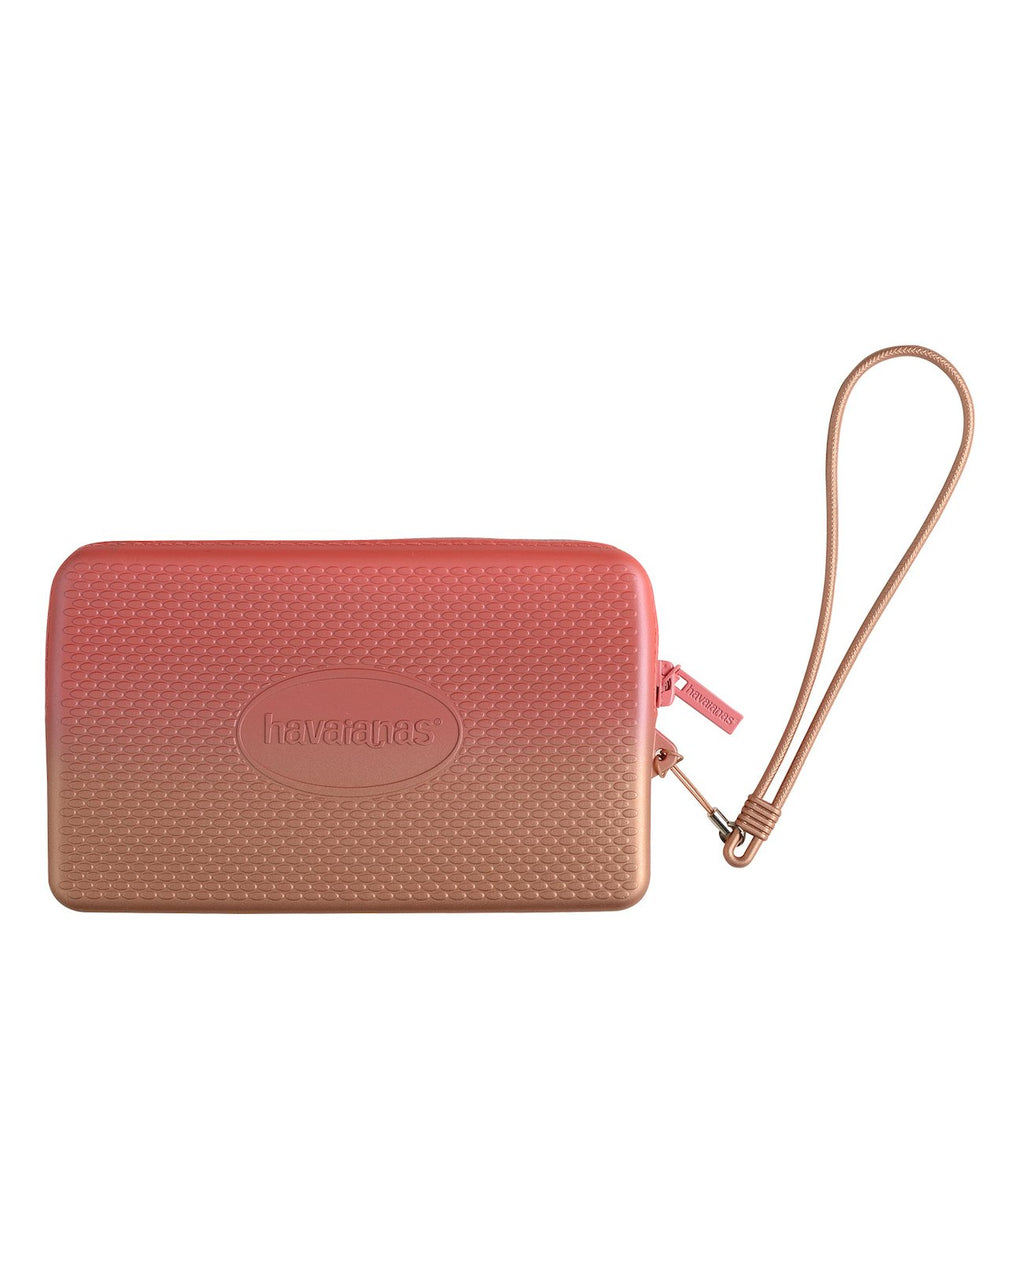 HAVAIANAS MINI BAG PLUS COOL METALLIC - GOLDEN BLUSH.PINK